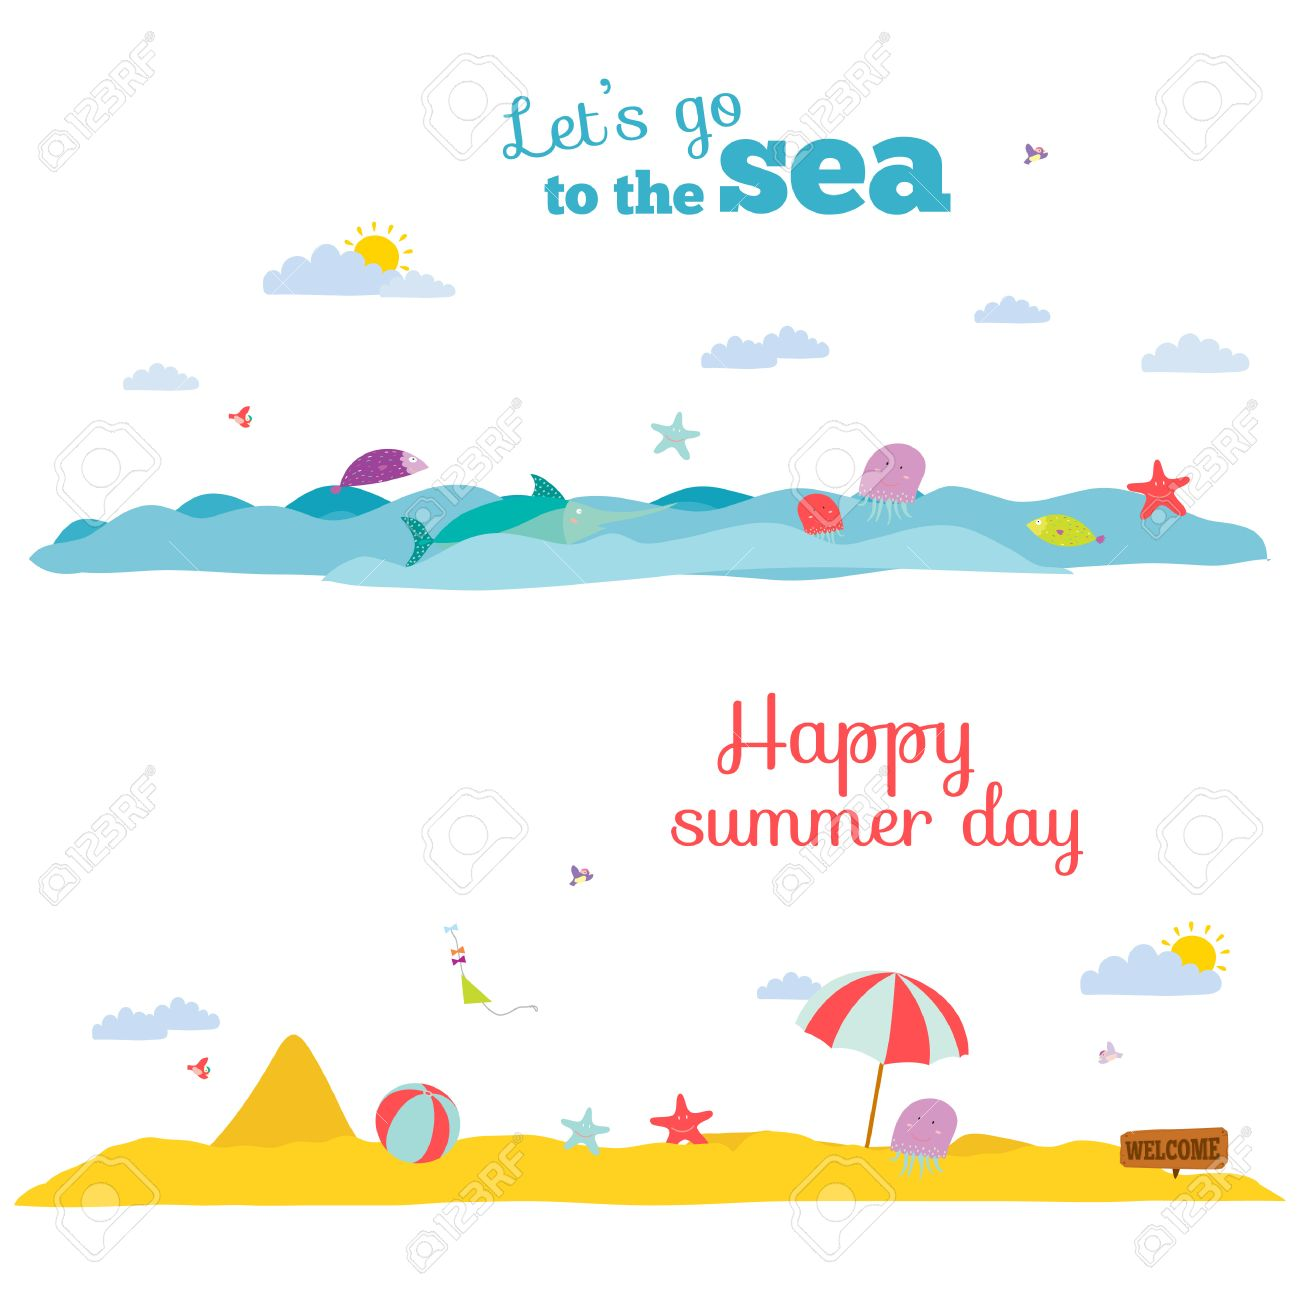 vector illustration banners for tourism or camp for kids in a